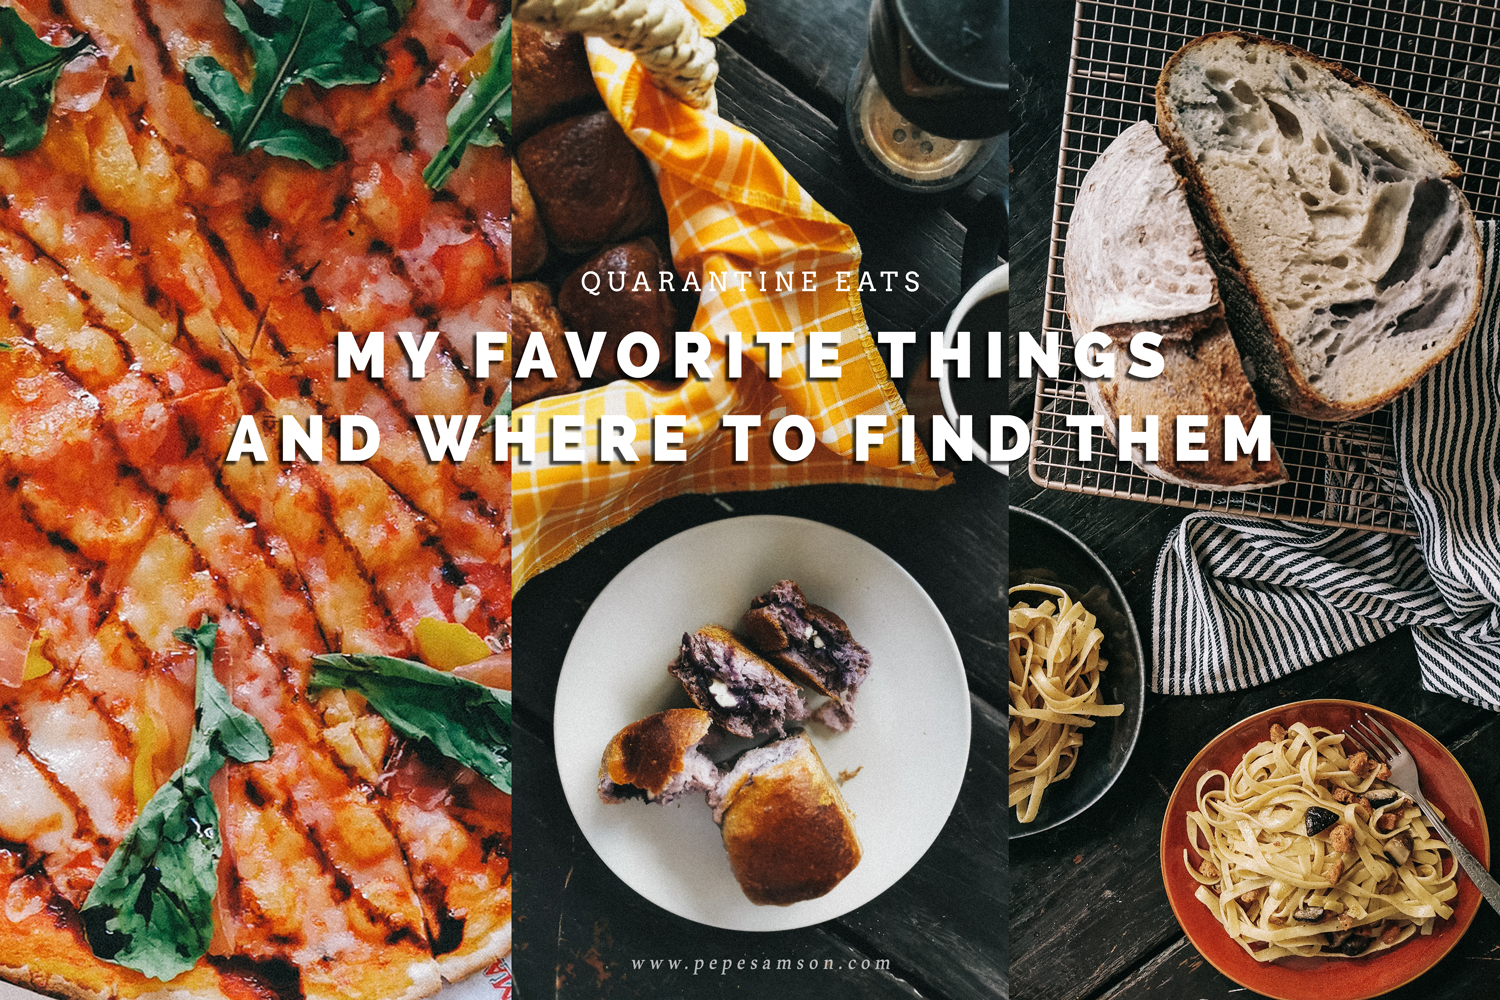 Quarantine Eats: 8 of My Favorite Things and Where to Find Them